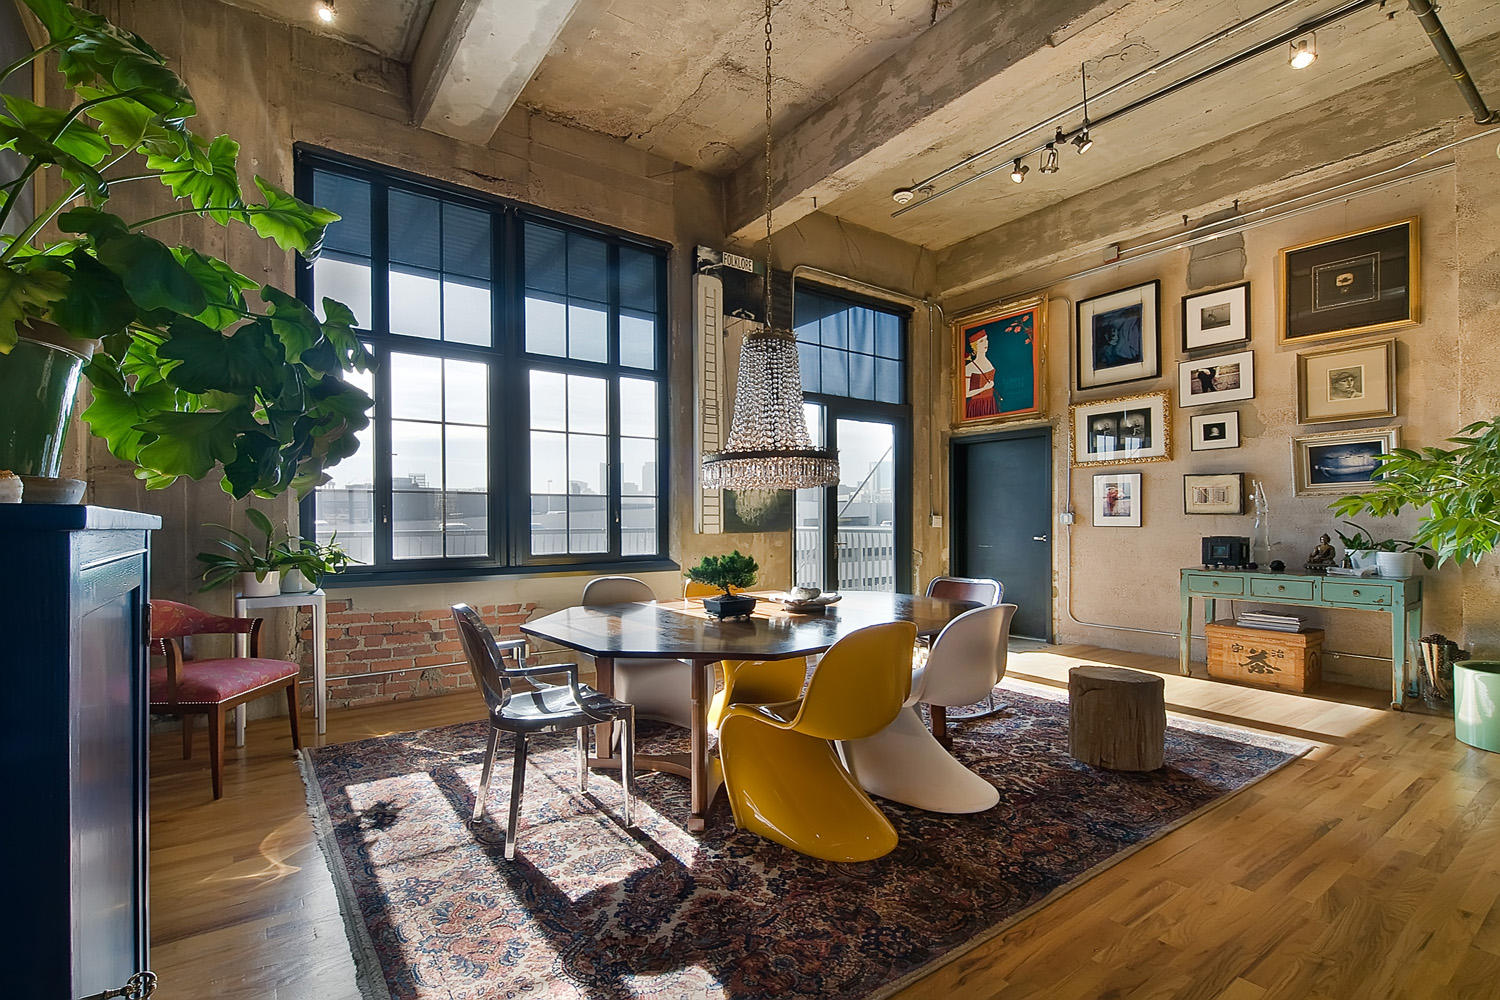 5 Reasons to Love the Industrial Loft